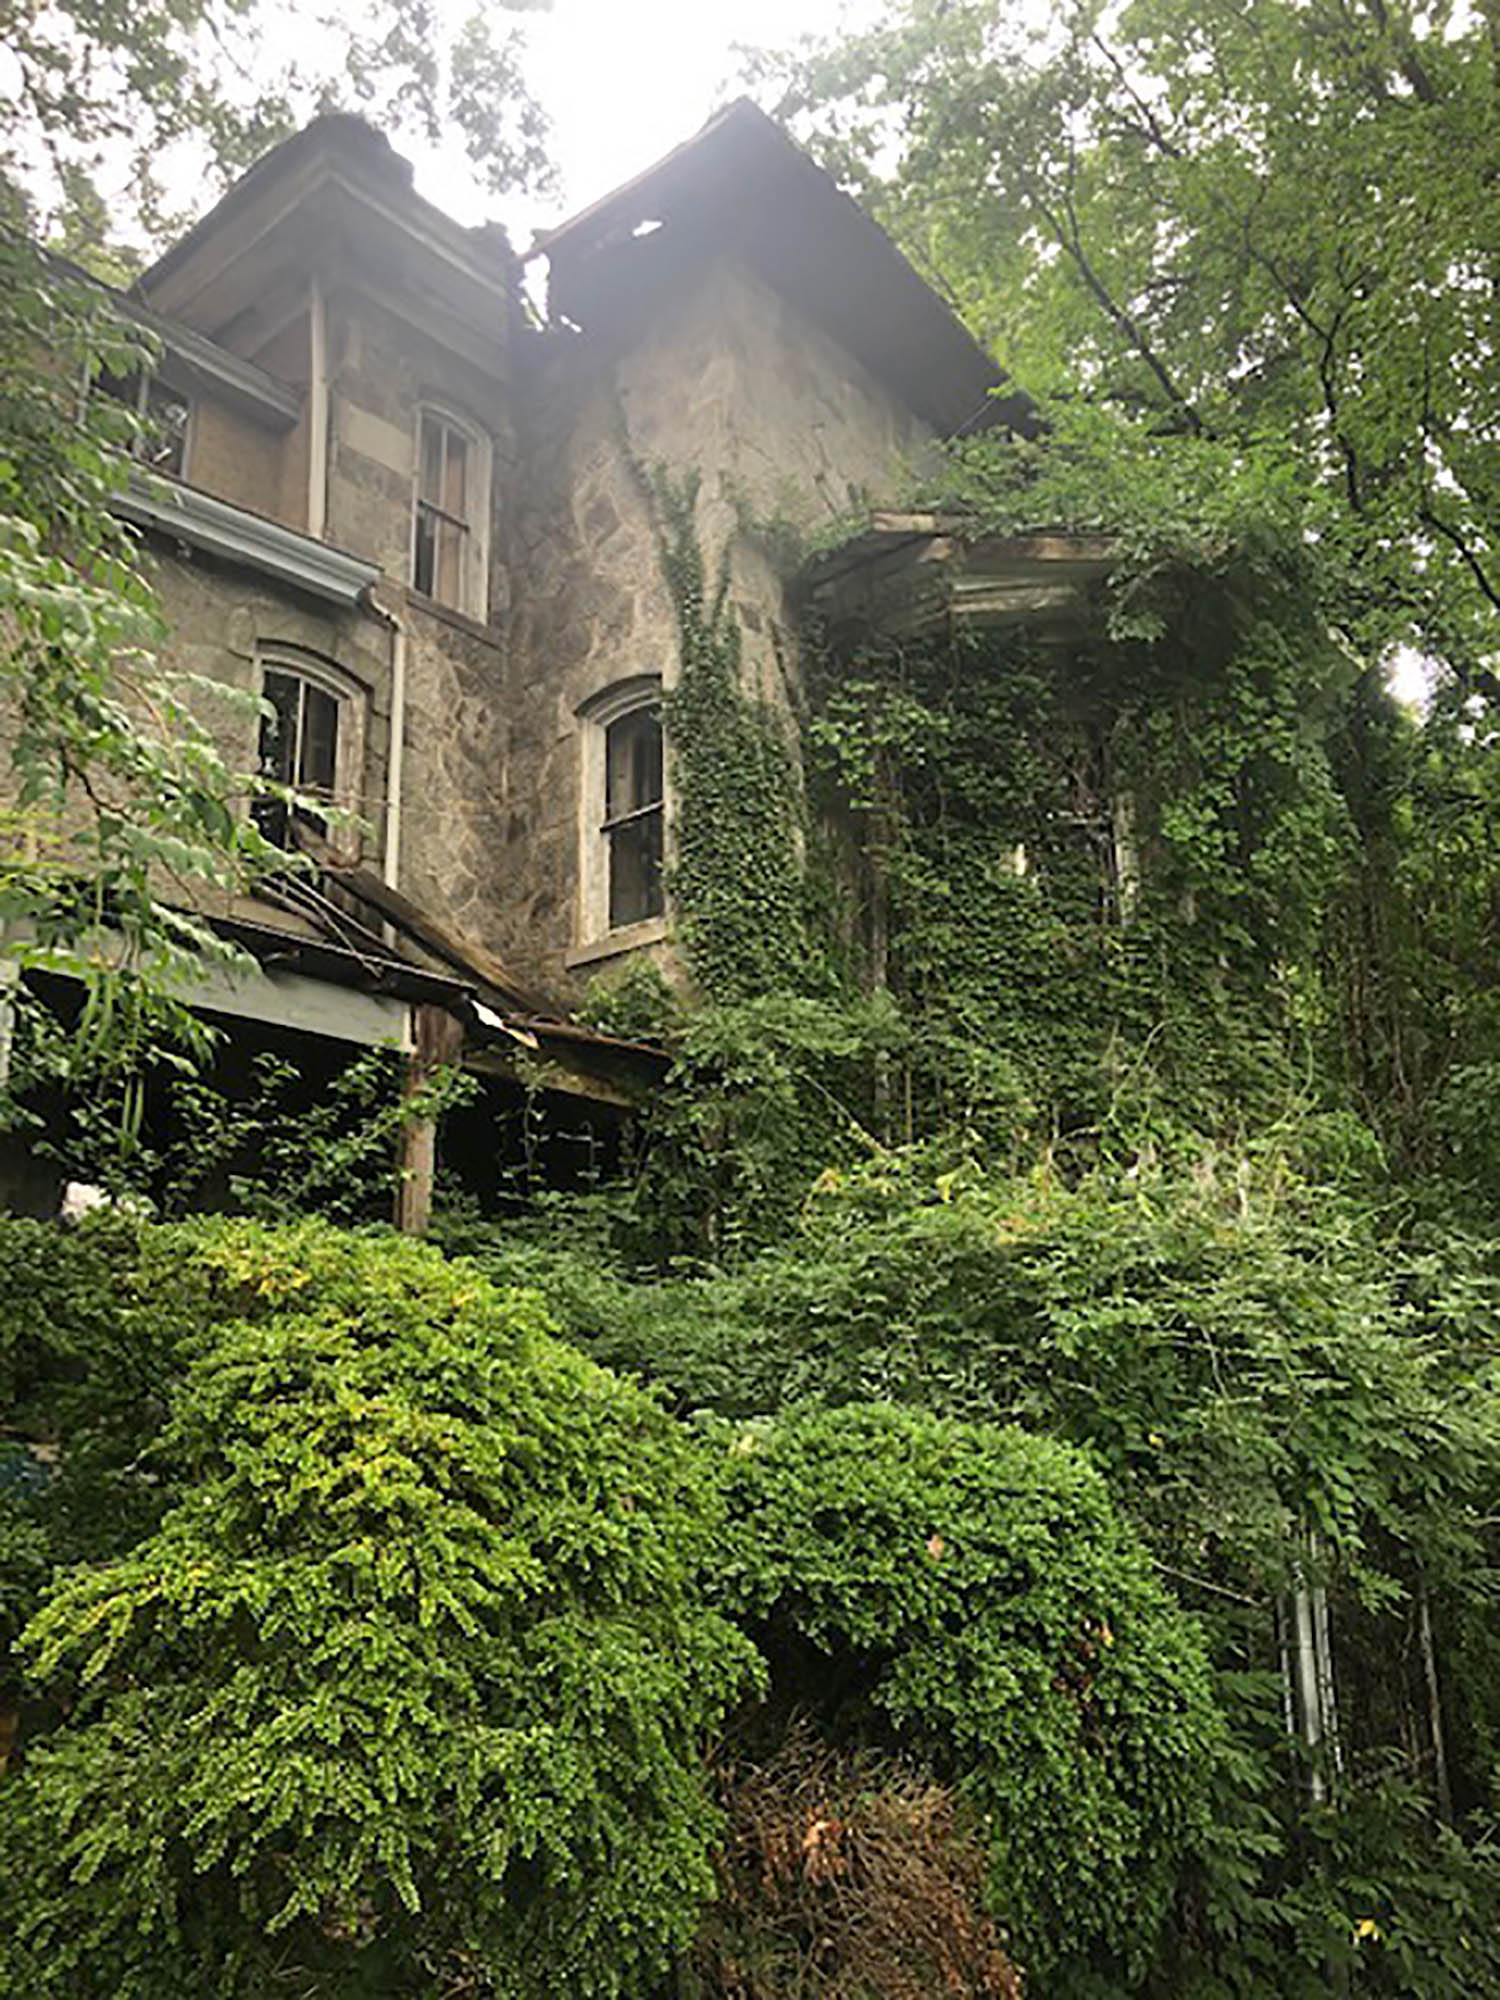 Empty for years, the house at 311 Cedar has been deemed uninhabitable by Swarthmore Borough.